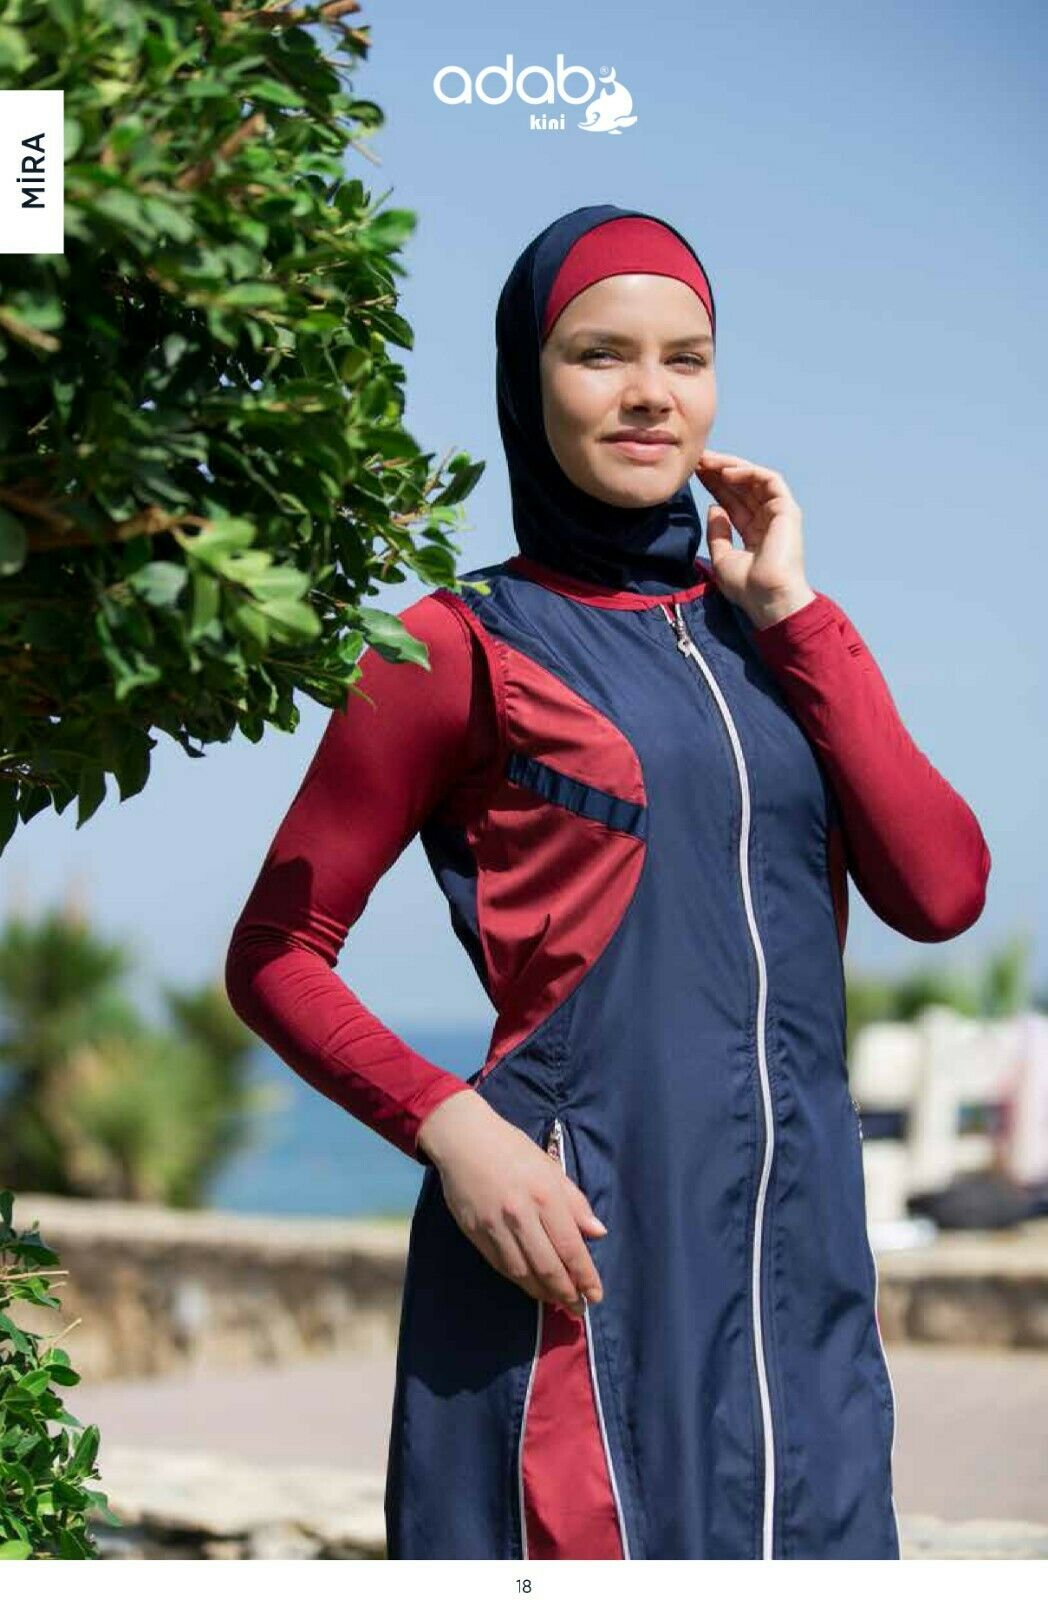 Adabkini Mira musulhommee 5 pièces Long Maillot de Bain Islamique Full Cover Modeste hijood